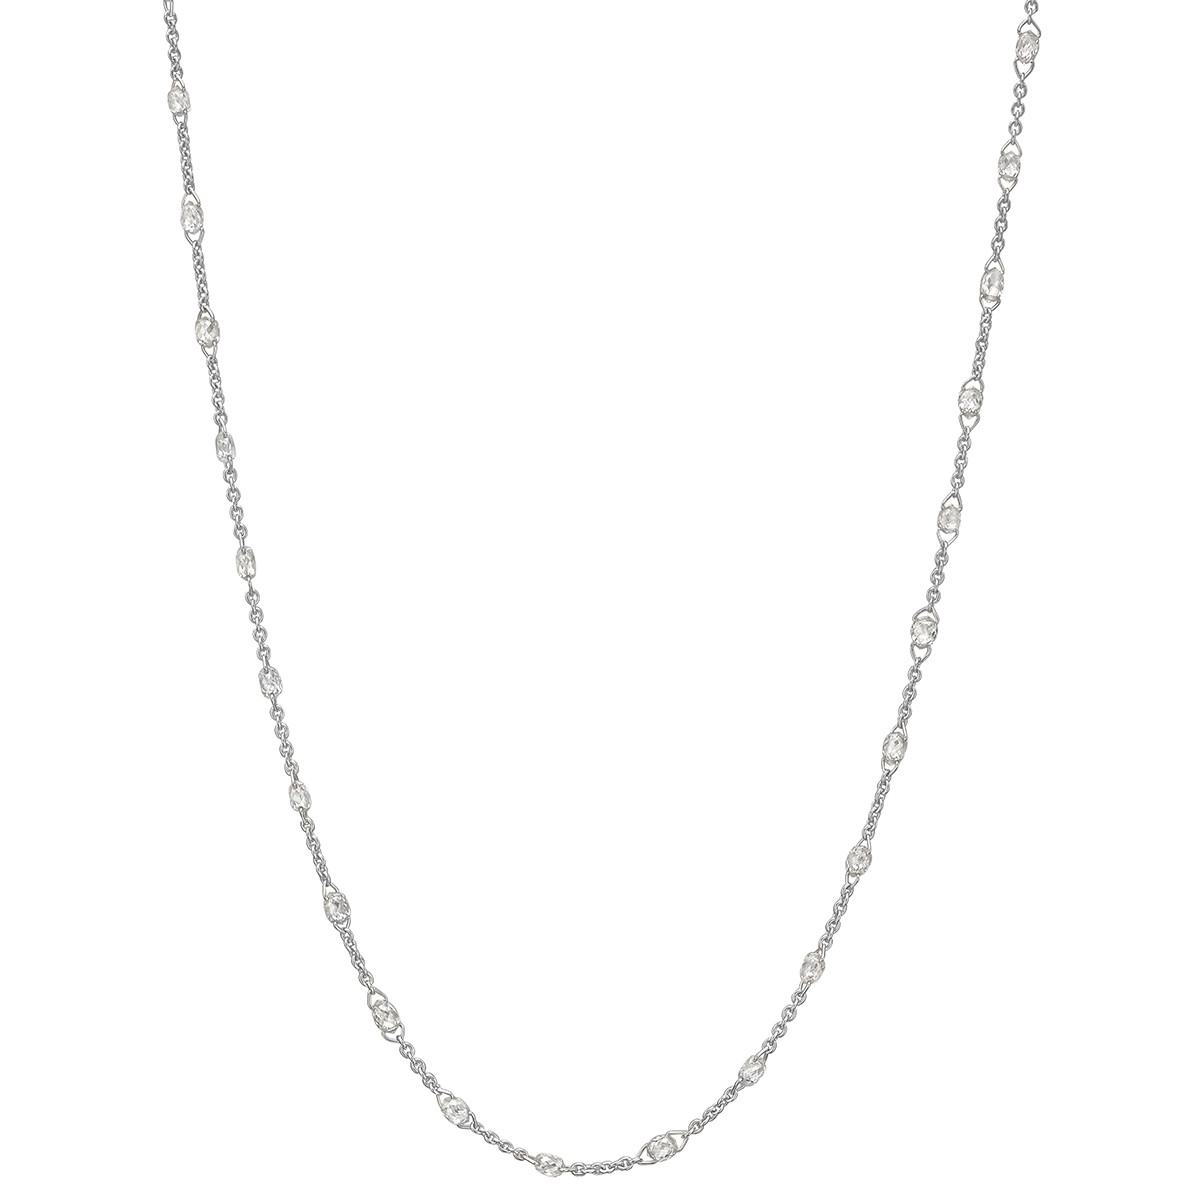 Briolette-Cut Diamond Chain Necklace (3.38ct tw)